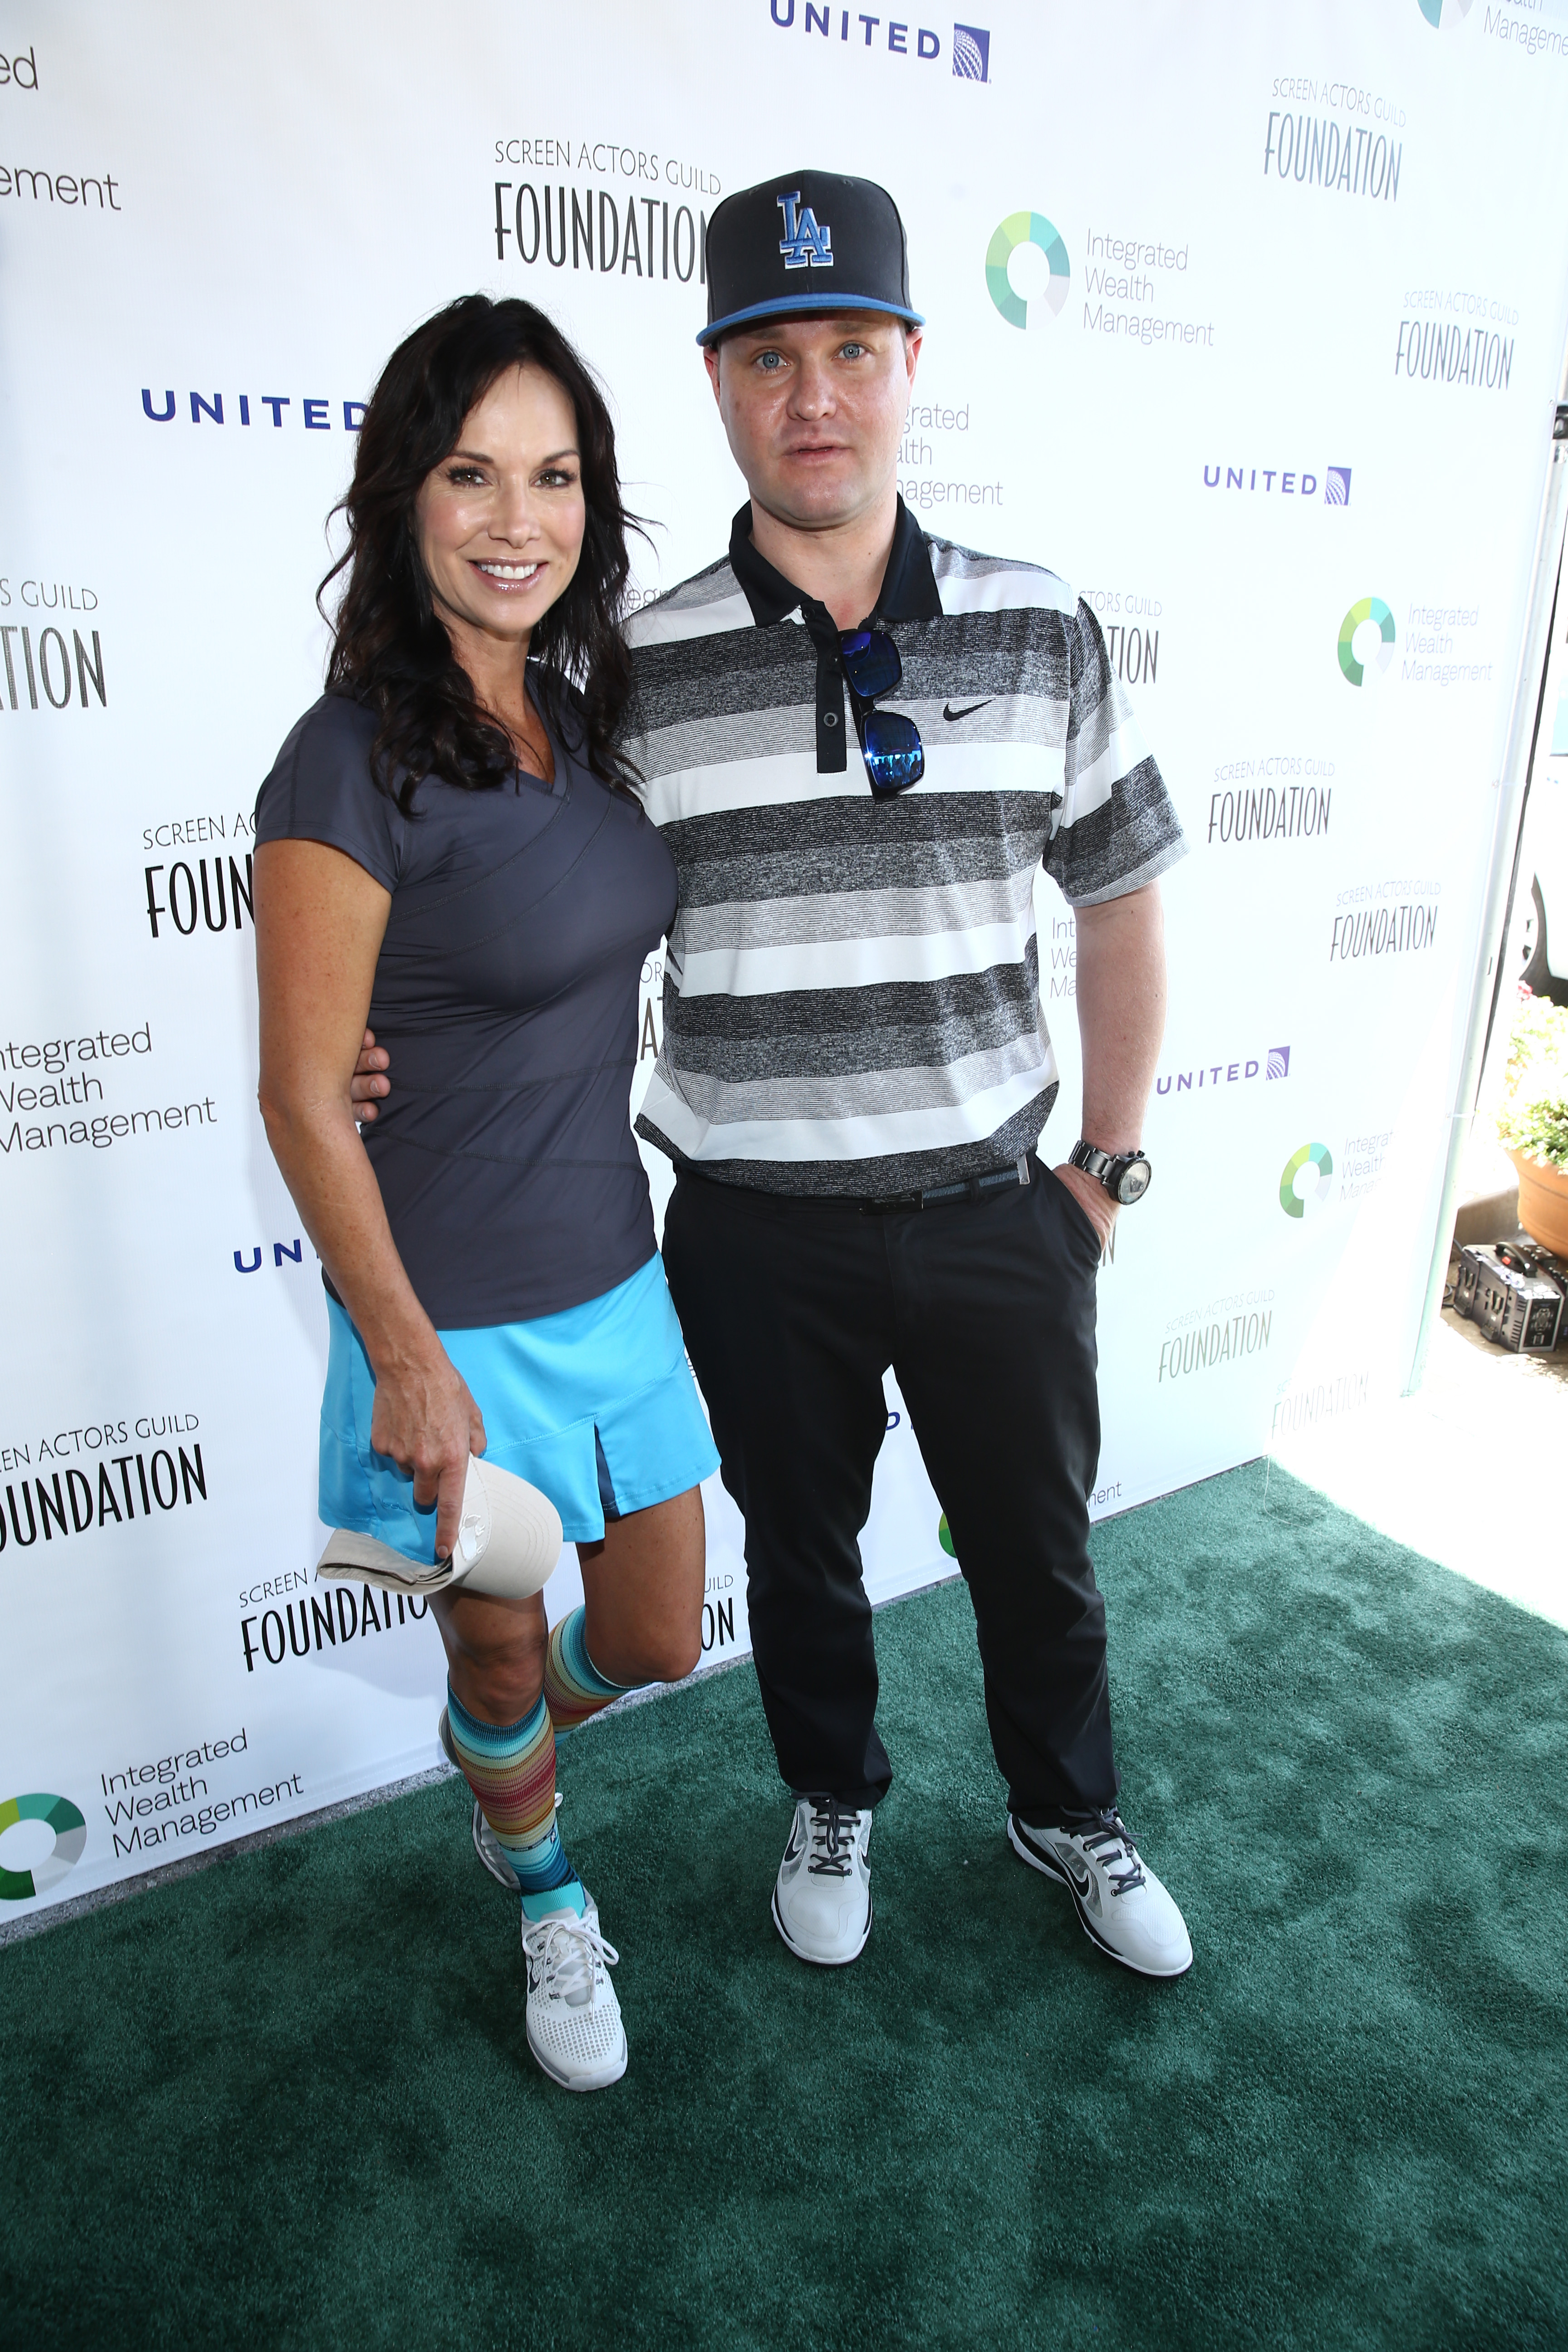 Debbe Dunning and Zachary Ty Bryan attend The Screen Actors Guild Foundation's 6th Annual Los Angeles Golf Classic on June 8, 2015 in Burbank, California. (Photo by Mark Davis/Getty Images for The Screen Actors Guild Foundation)